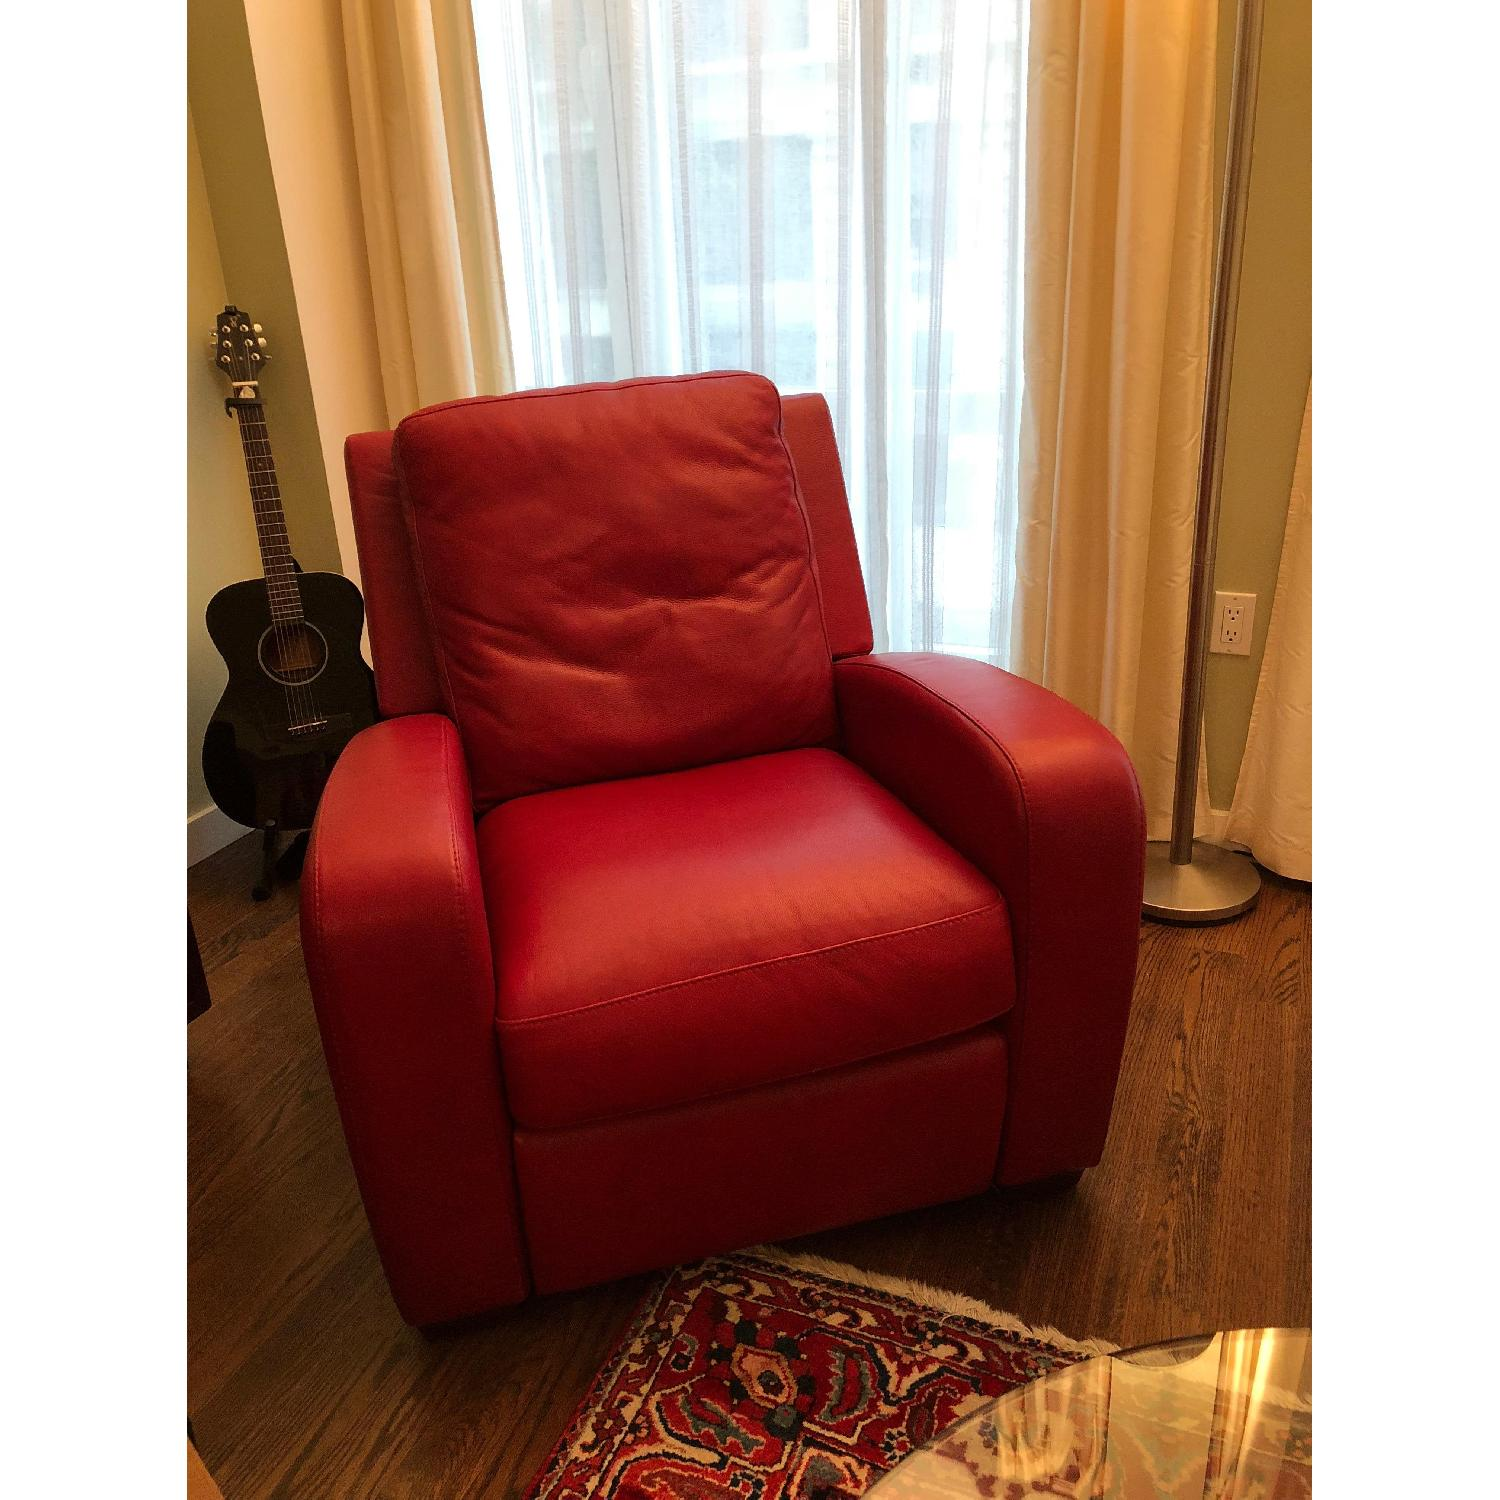 Crate & Barrel Leather Recliner in Red-2